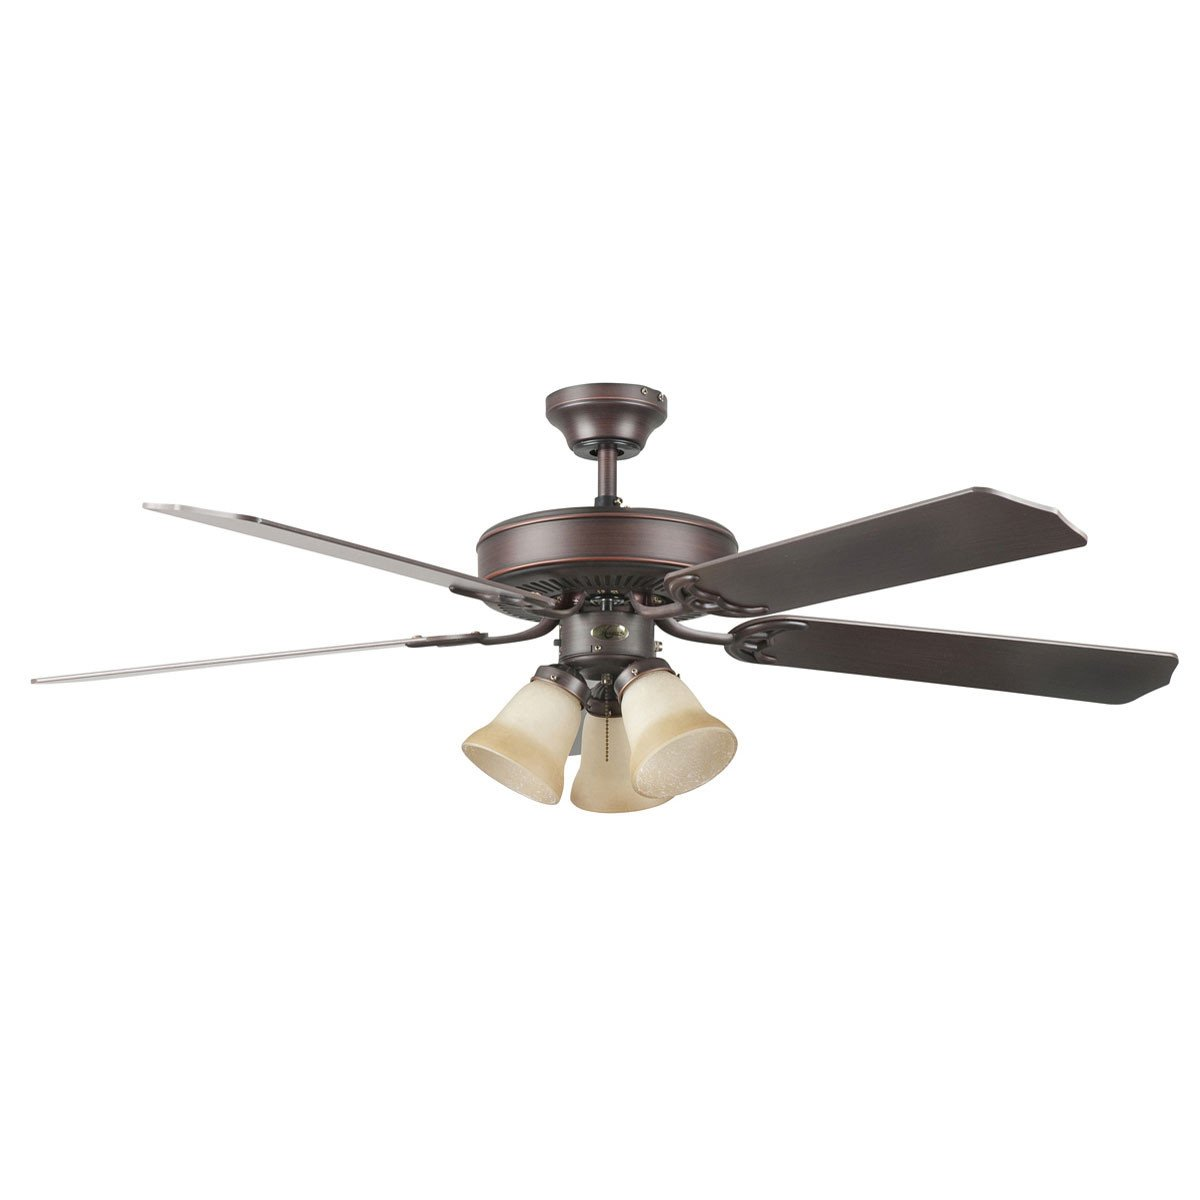 "Concord Fans 42"" Contemporary Oil Rubbed Bronze Small Ceiling Fan with Light Kit"